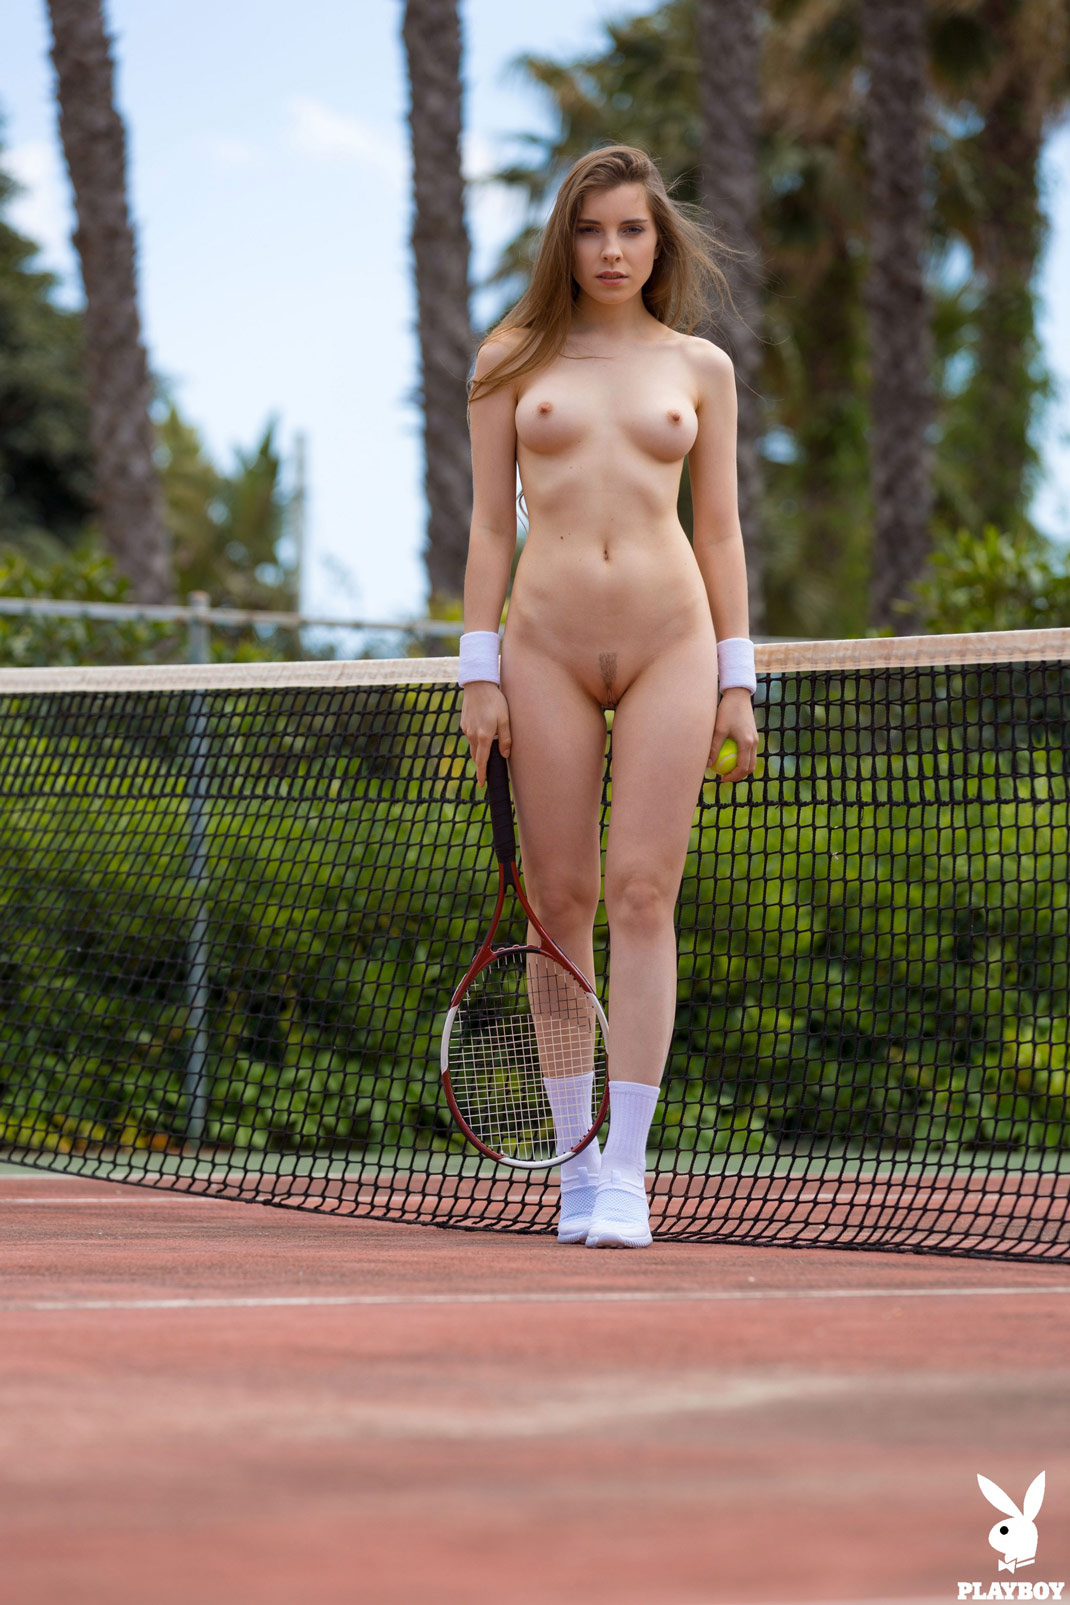 Photos naked players tennis playboy and